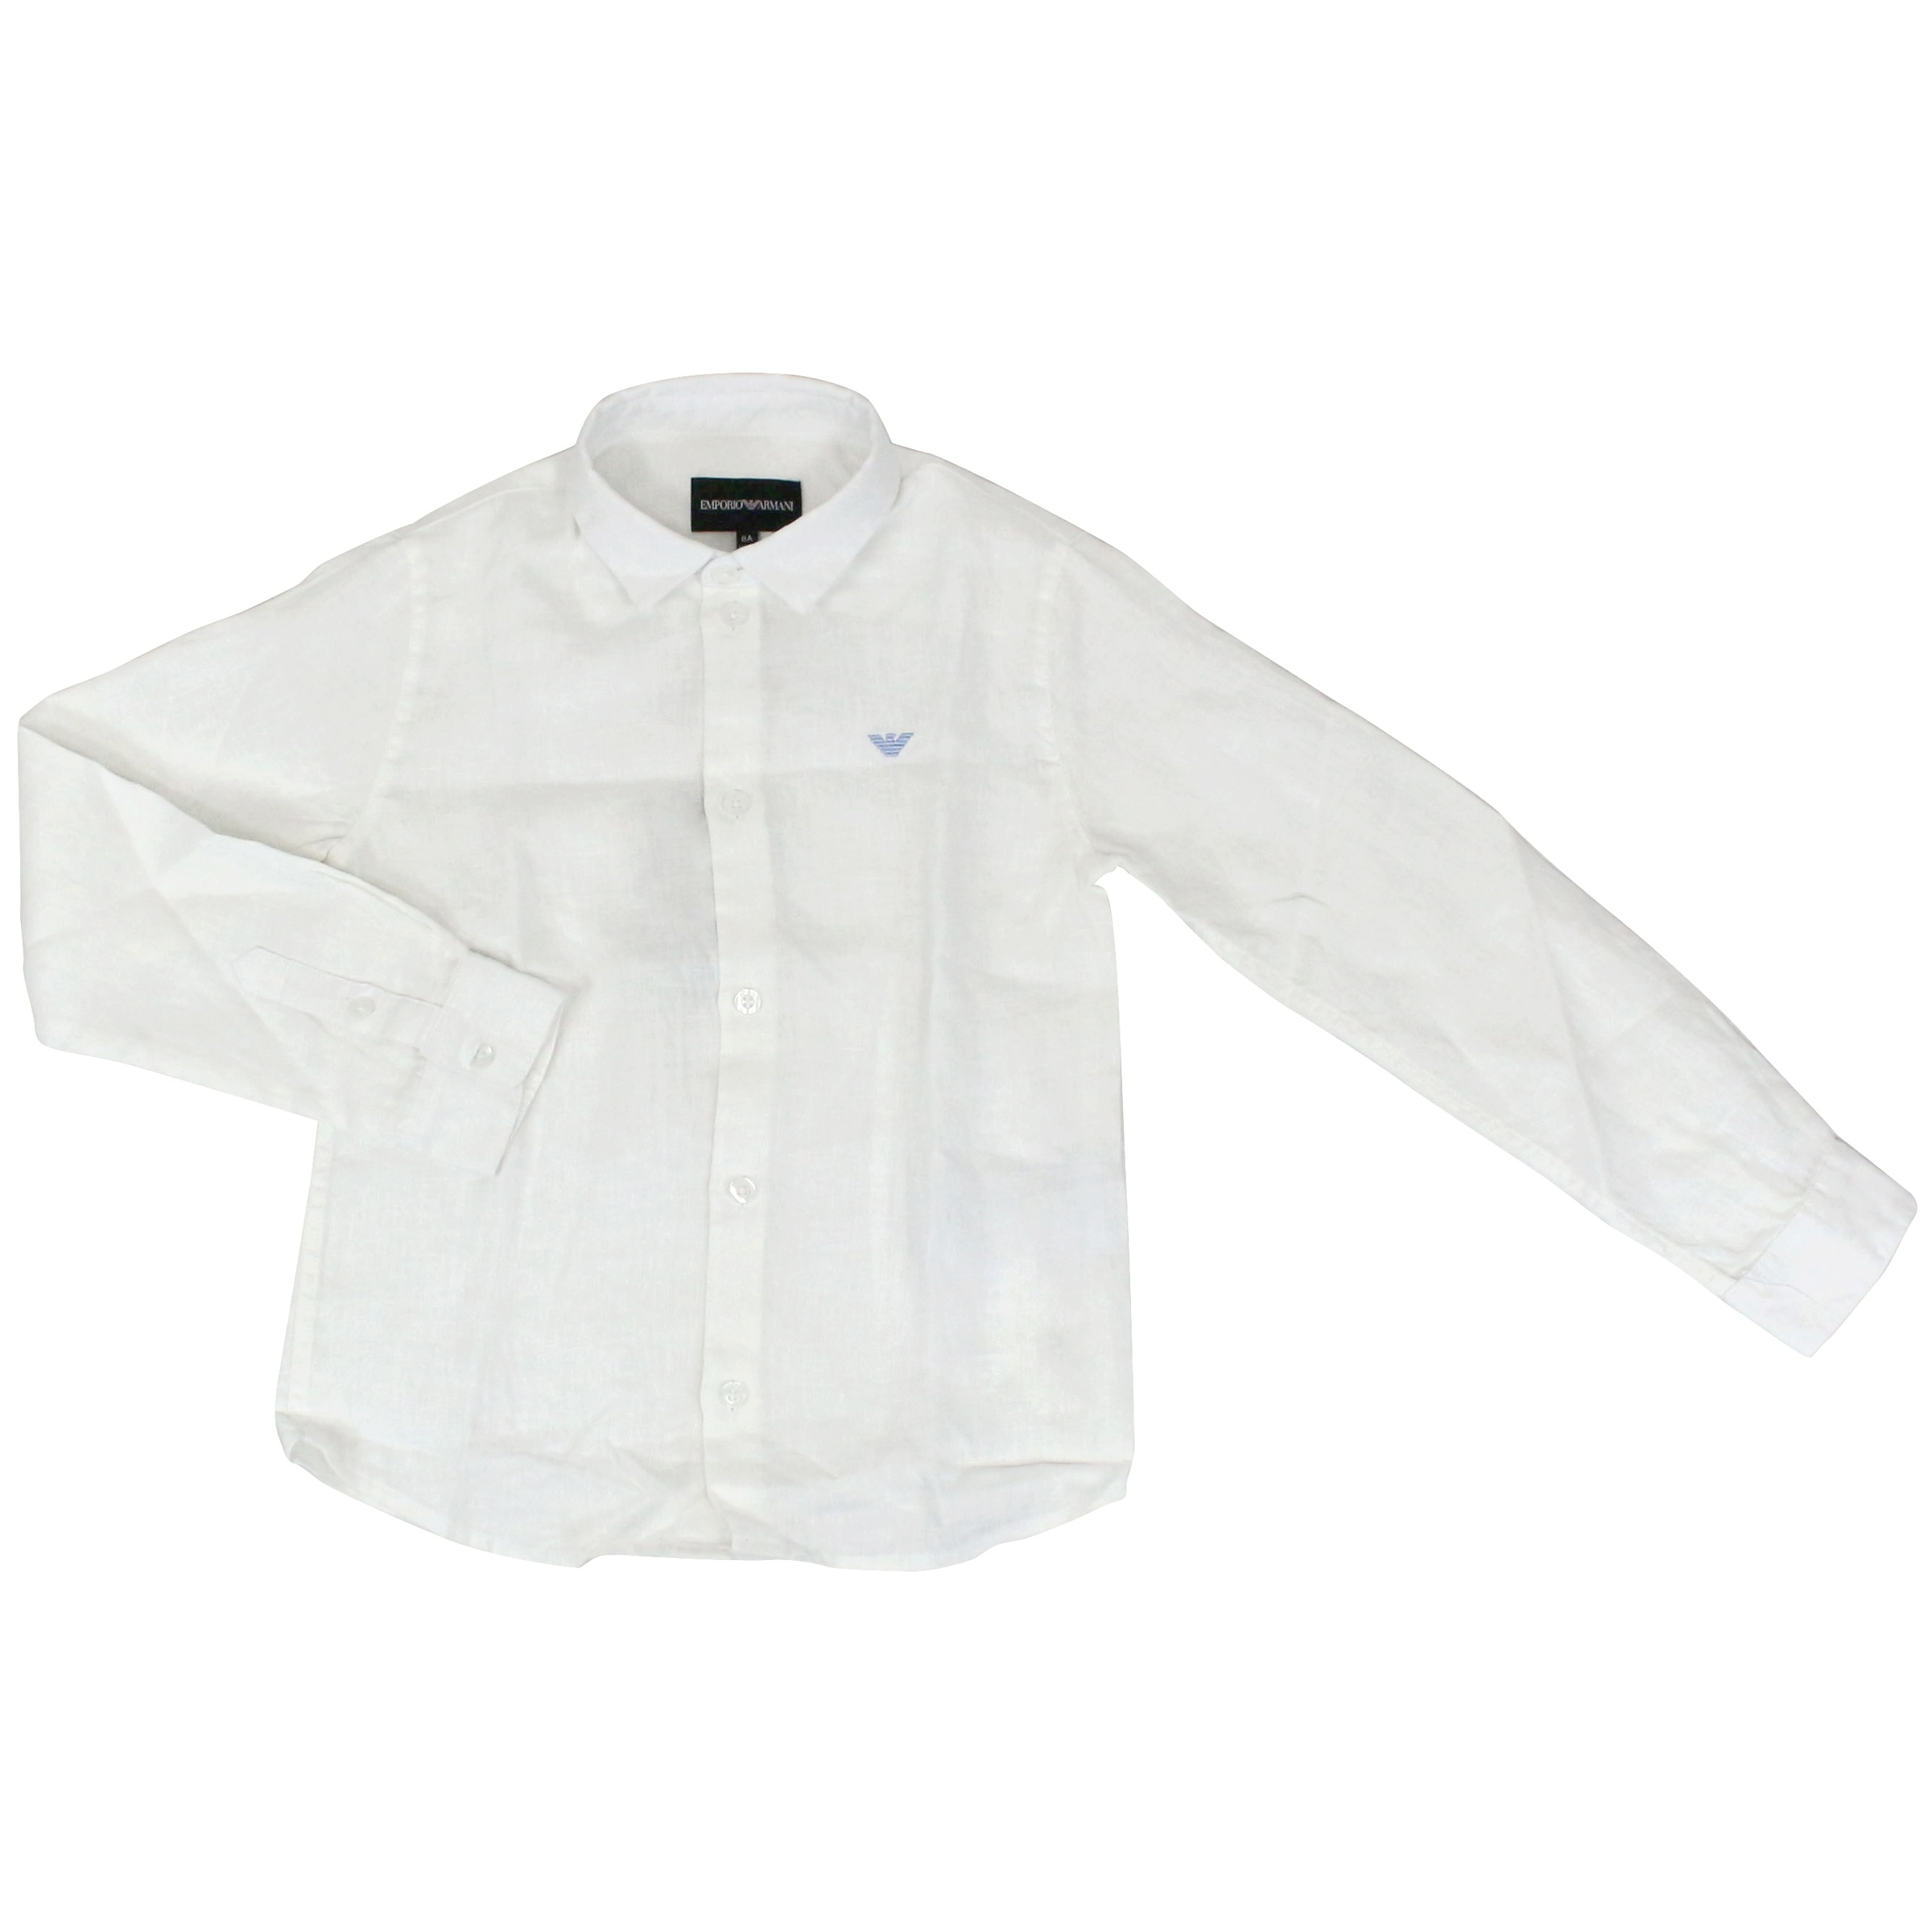 d91415ebb5 Pure linen shirt with logo embroidery